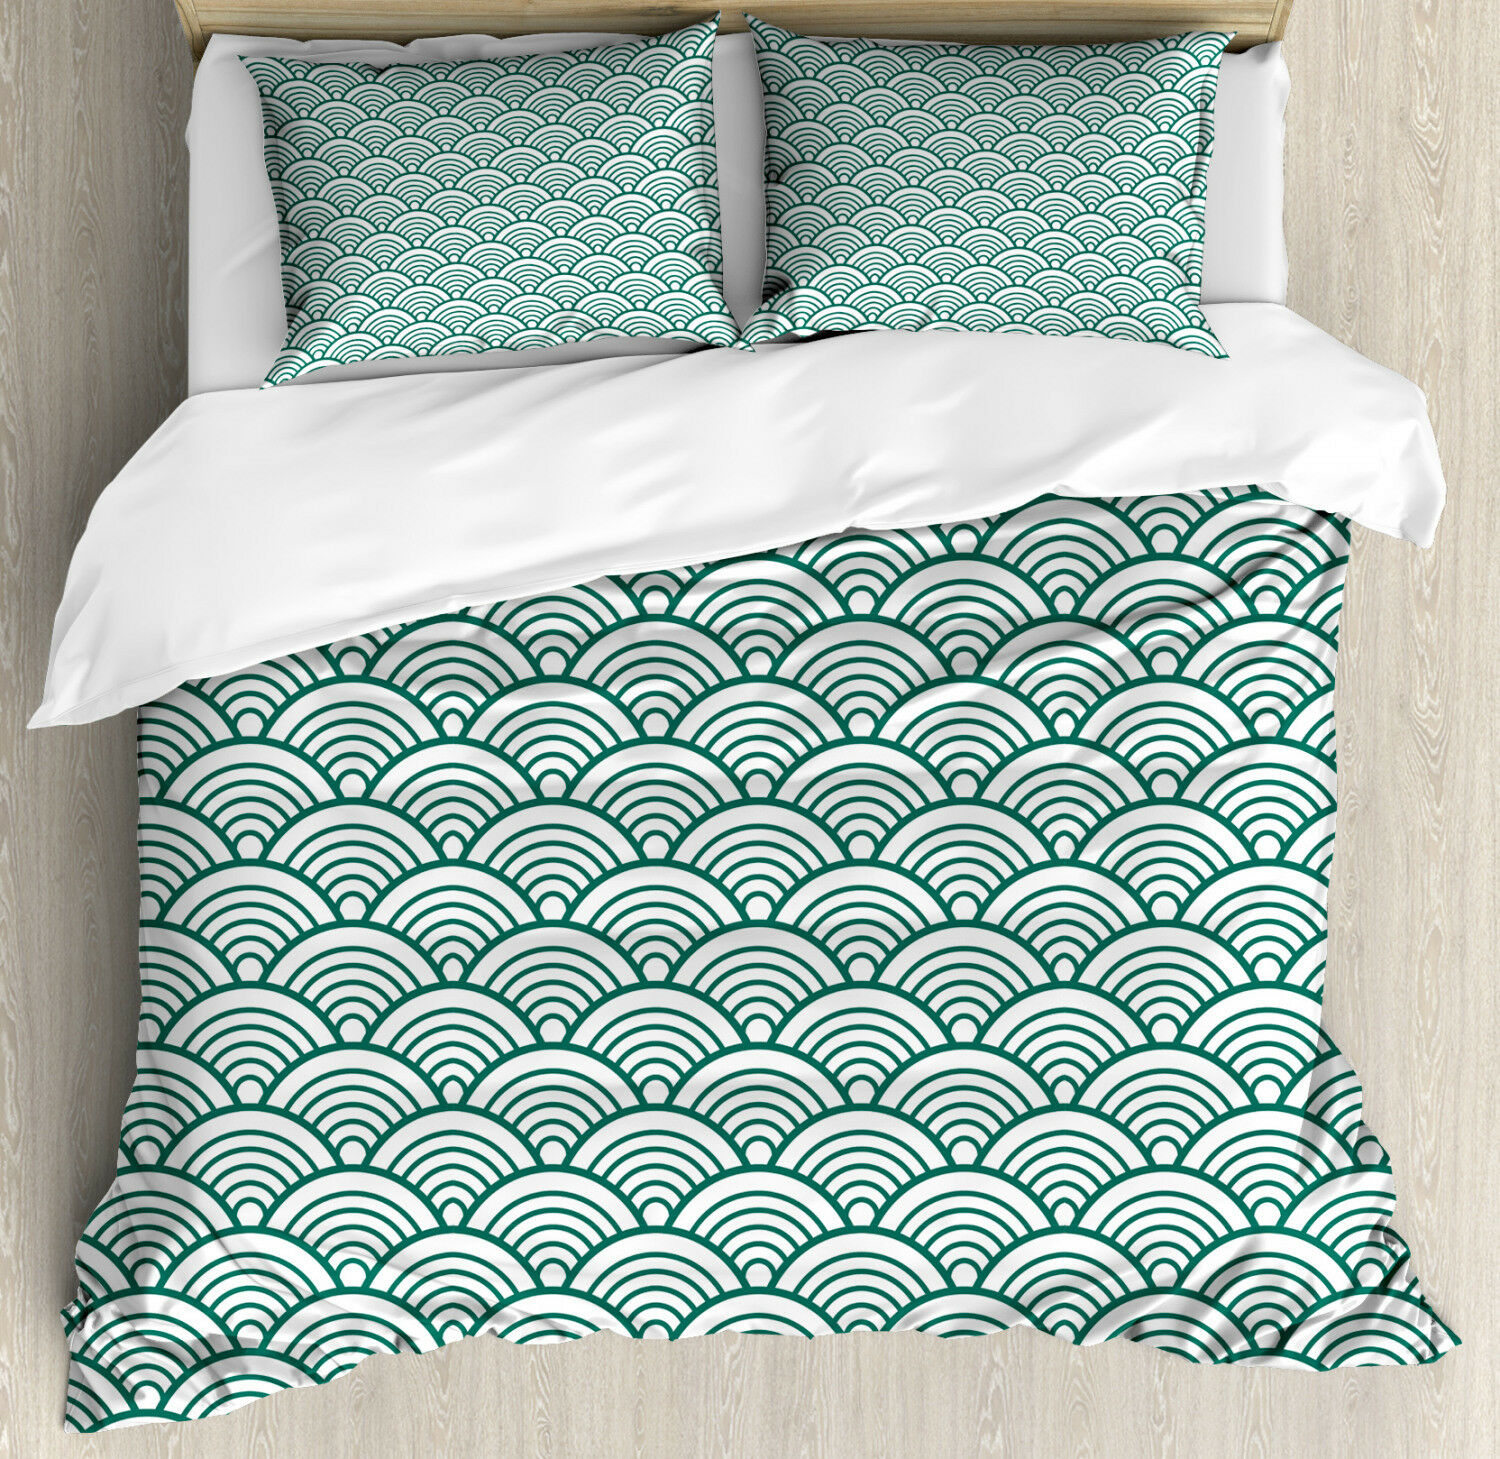 Teal Duvet Cover Set with Pillow Shams Asian Seigaiha Scales Print